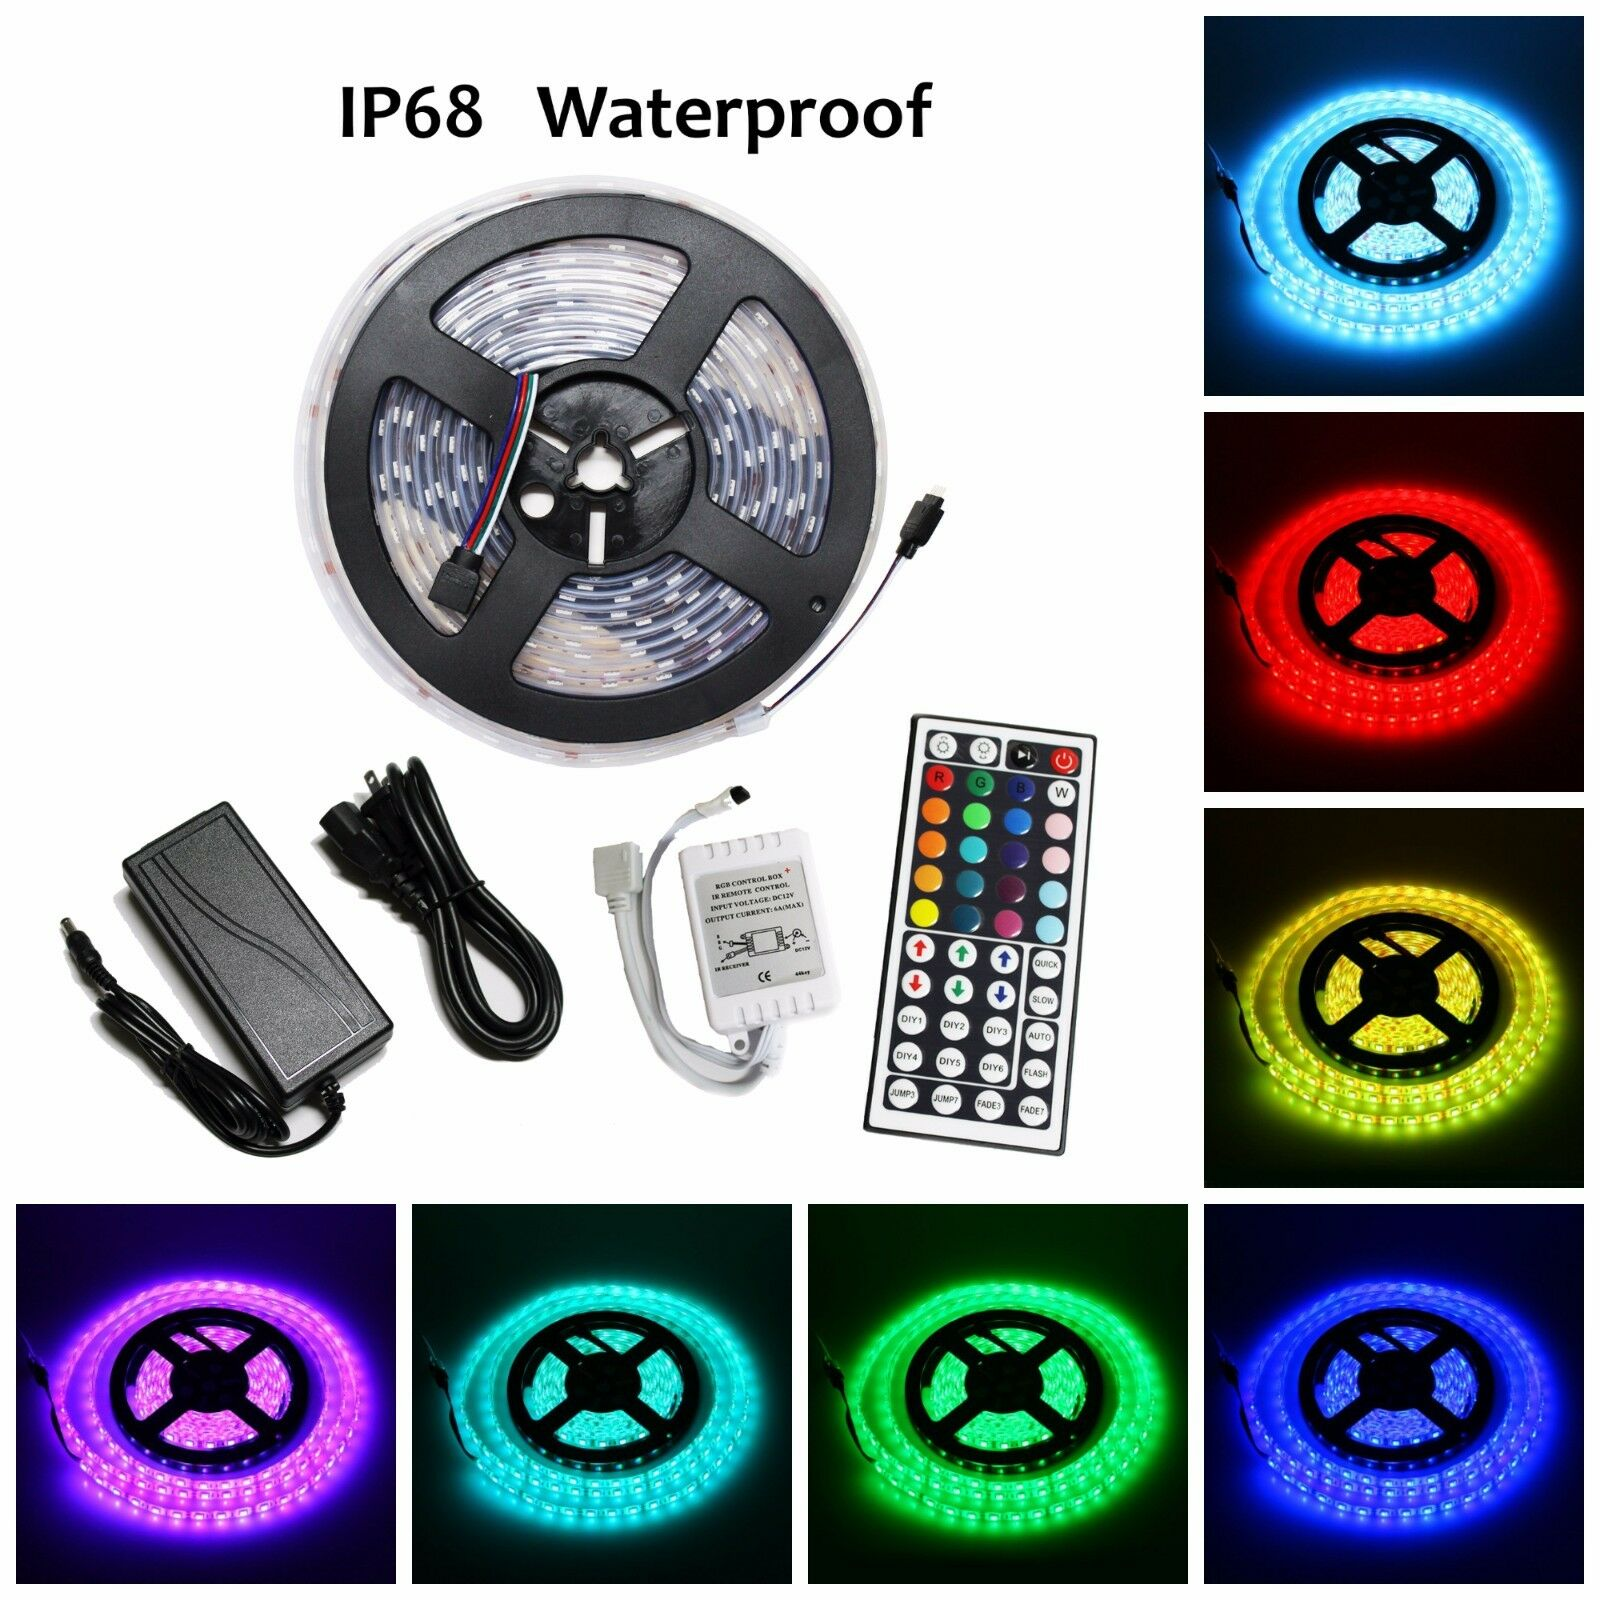 5m smd rgb 5050 ip68 waterproof 300 led strip light 44 key remote 12v power kit ebay. Black Bedroom Furniture Sets. Home Design Ideas